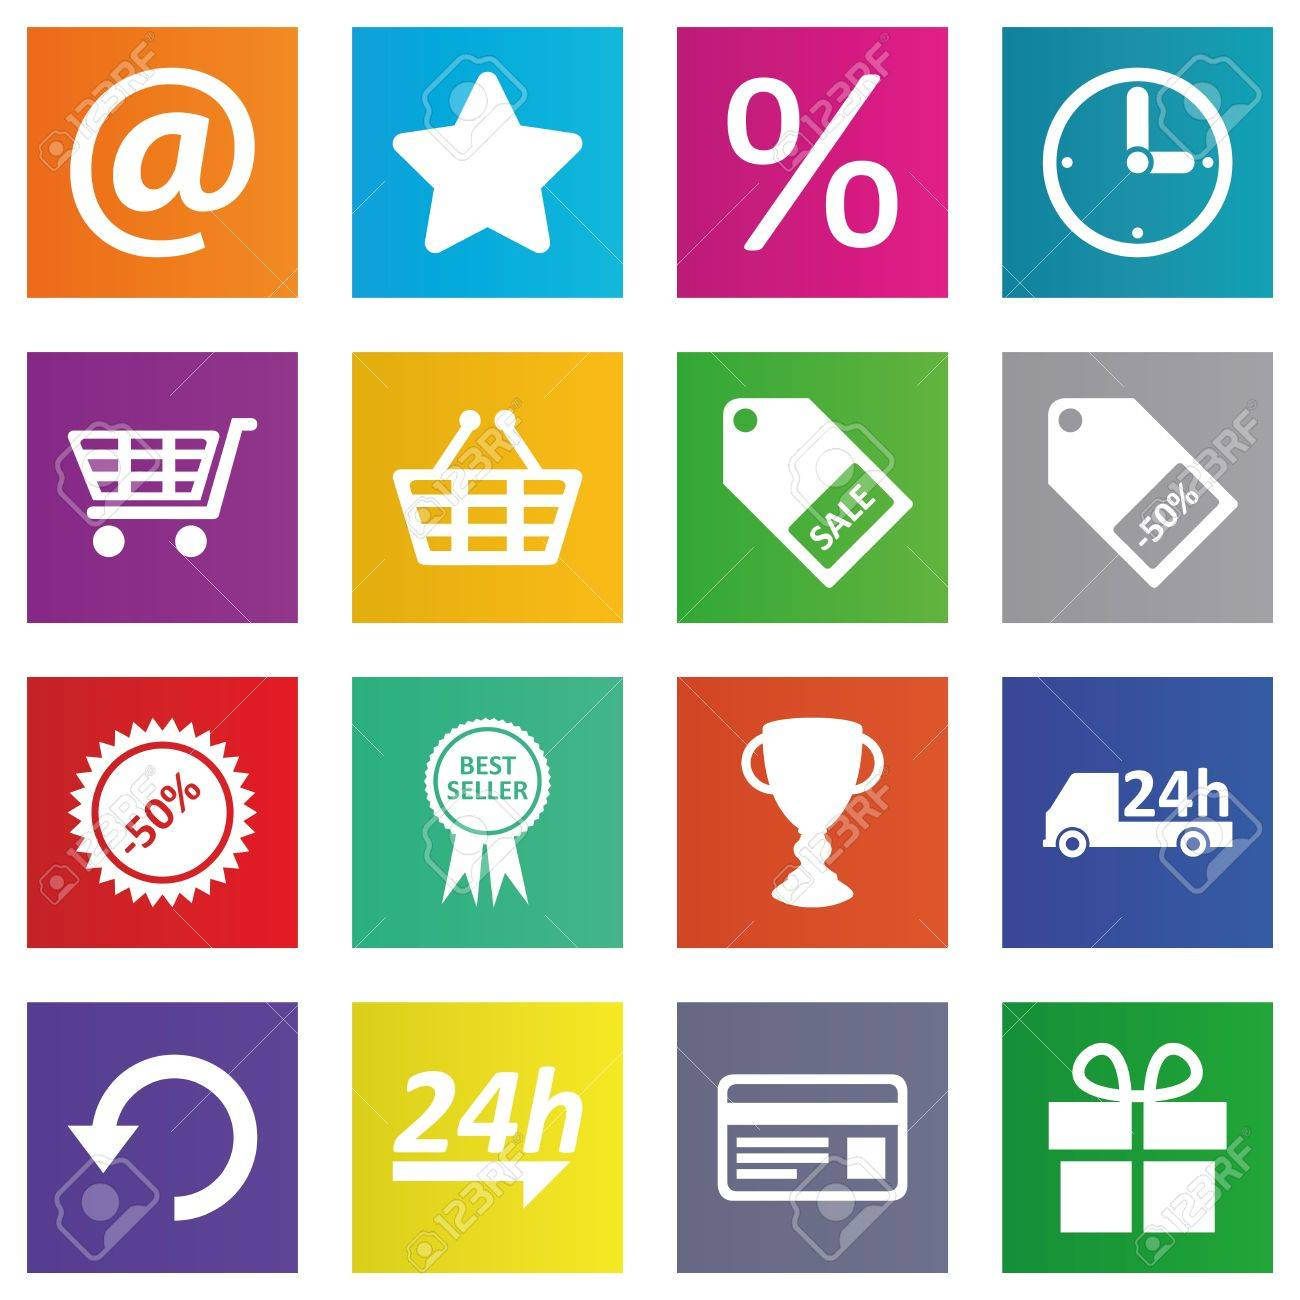 Business, e-commerce, web and shopping icons set in metro style Stock Vector - 19087343